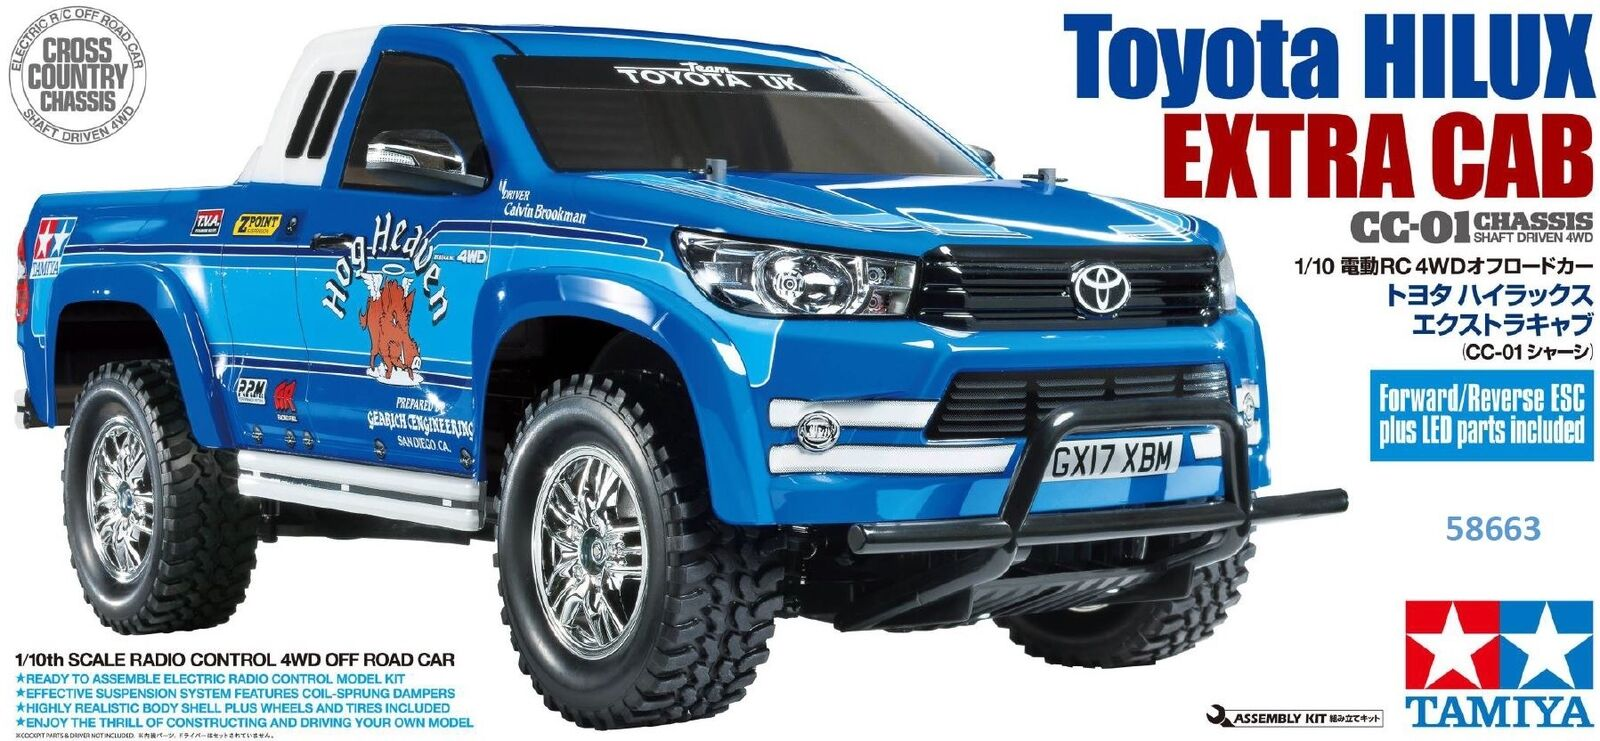 Tamiya Toyota Hilux Extra Cab CC-01 Chassis with ESC